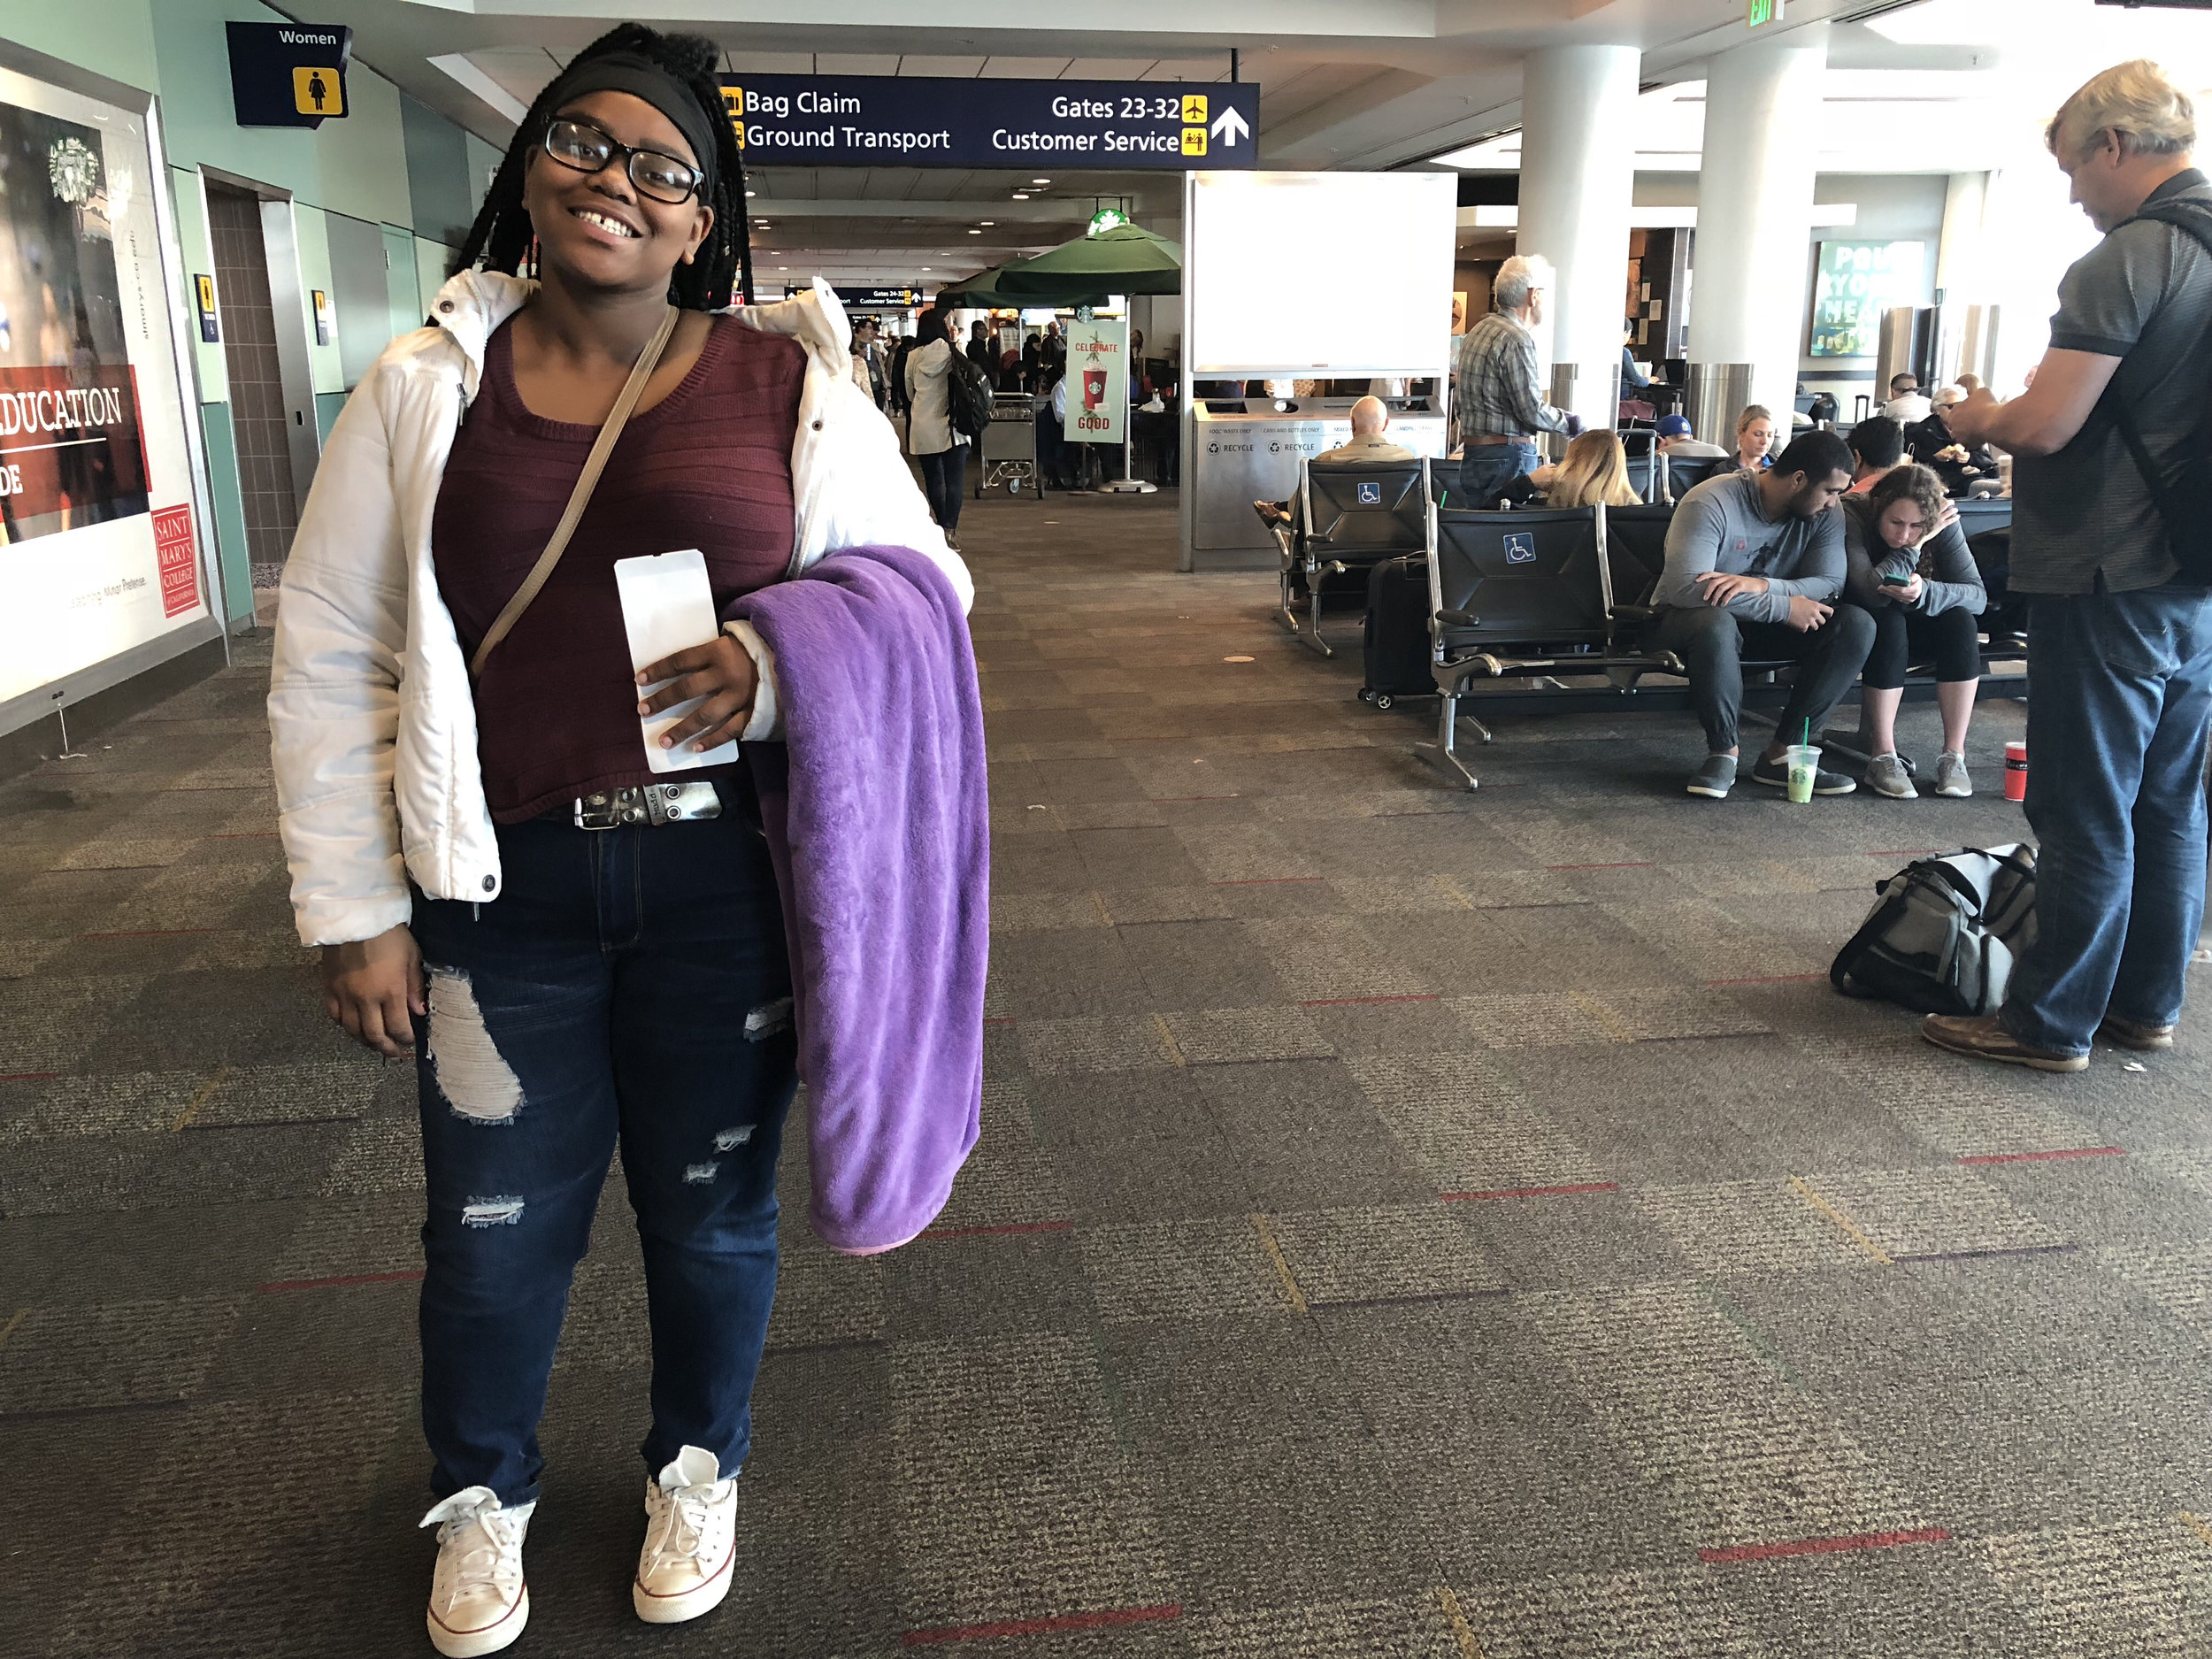 RYSE members and staff attended a conference in LA. This was RYSE member Sharlia's first time traveling on a plane!